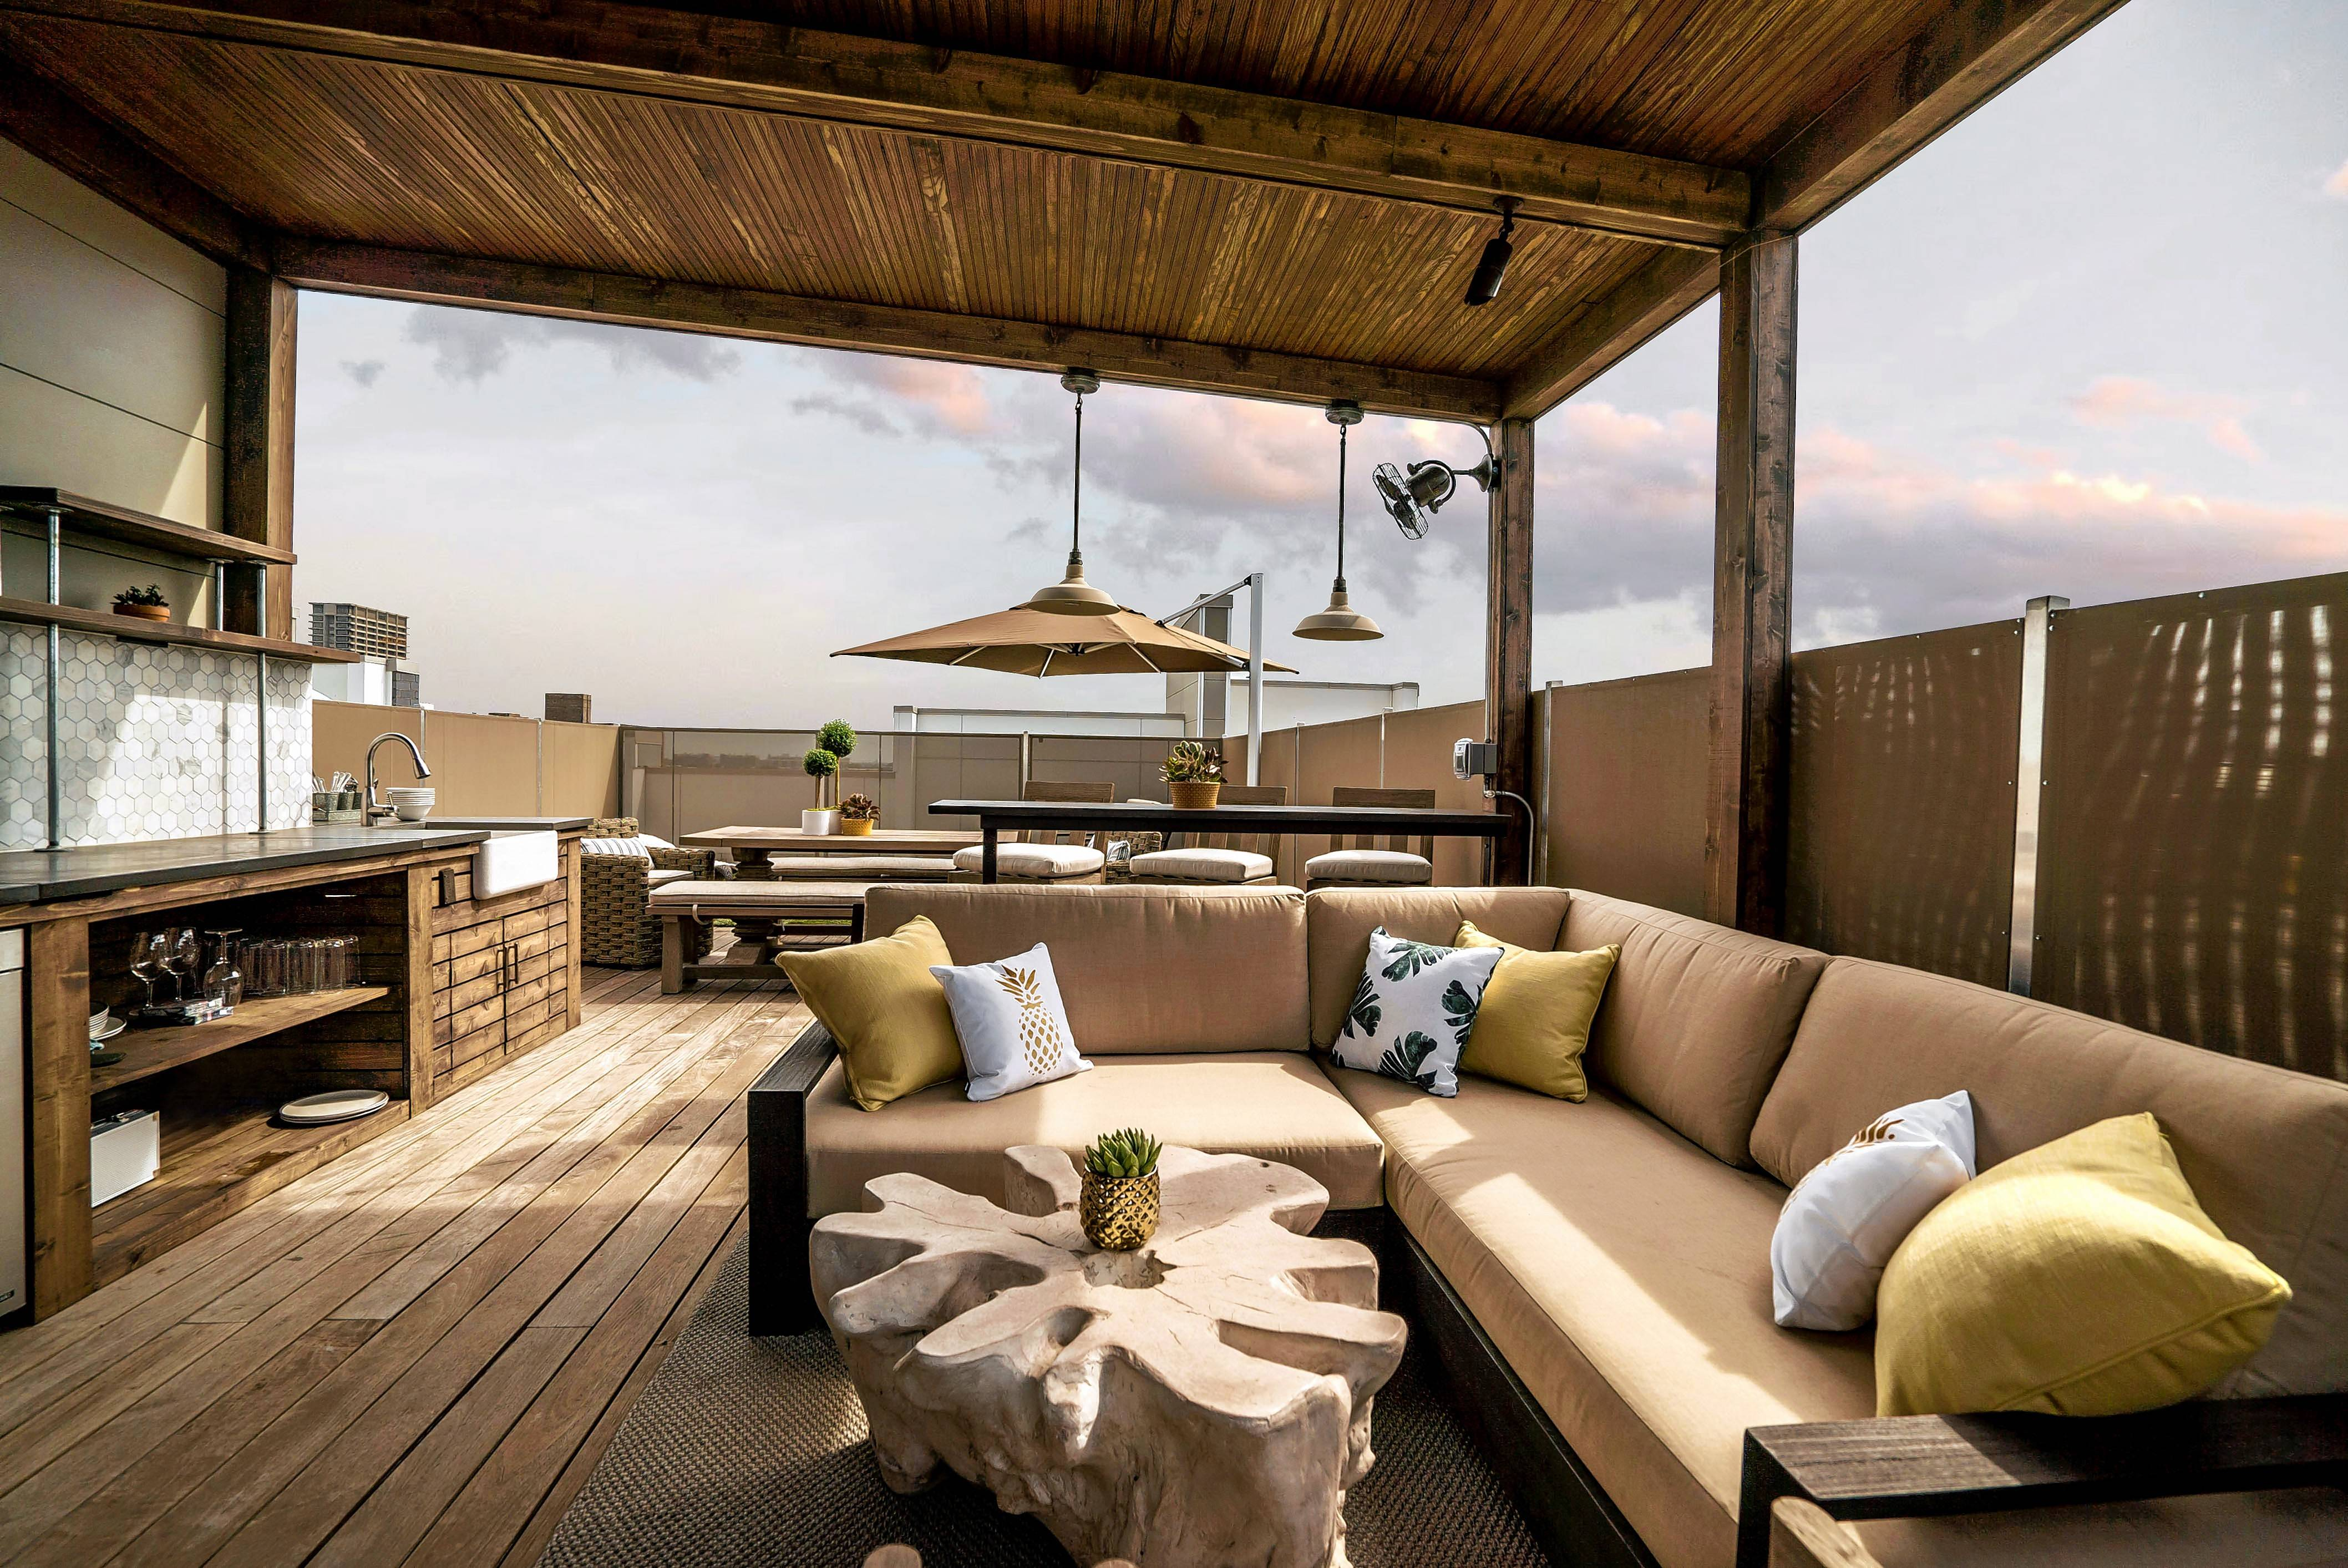 This roof deck was designed by Chicago Roof Deck & Garden, a design-build firm.